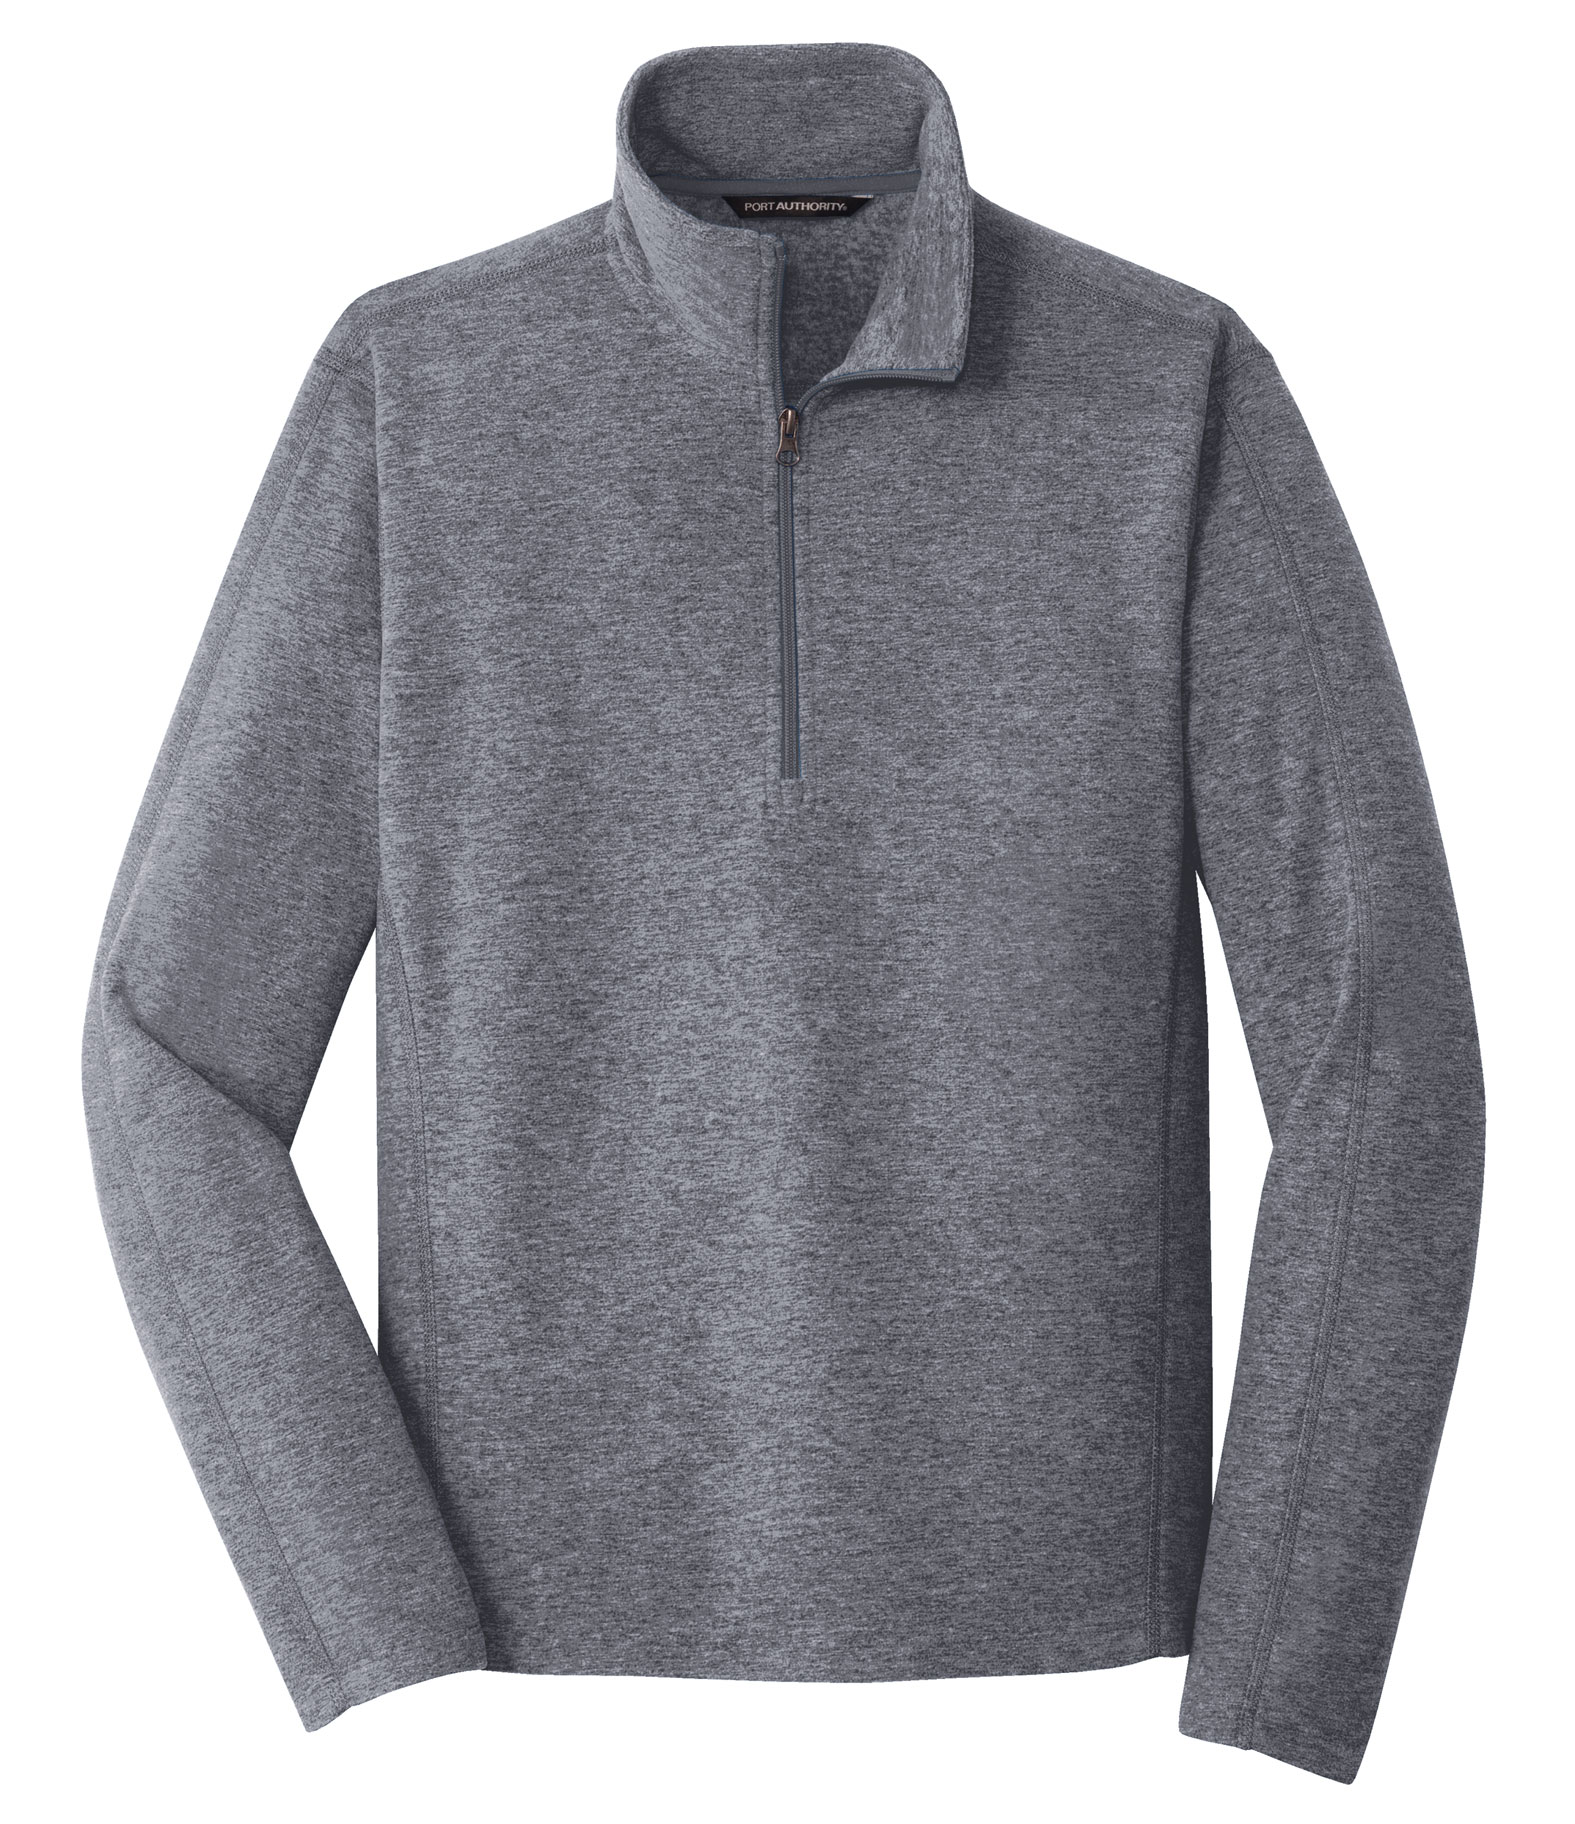 Mens Heather Microfleece 1/2 Zip Jacket